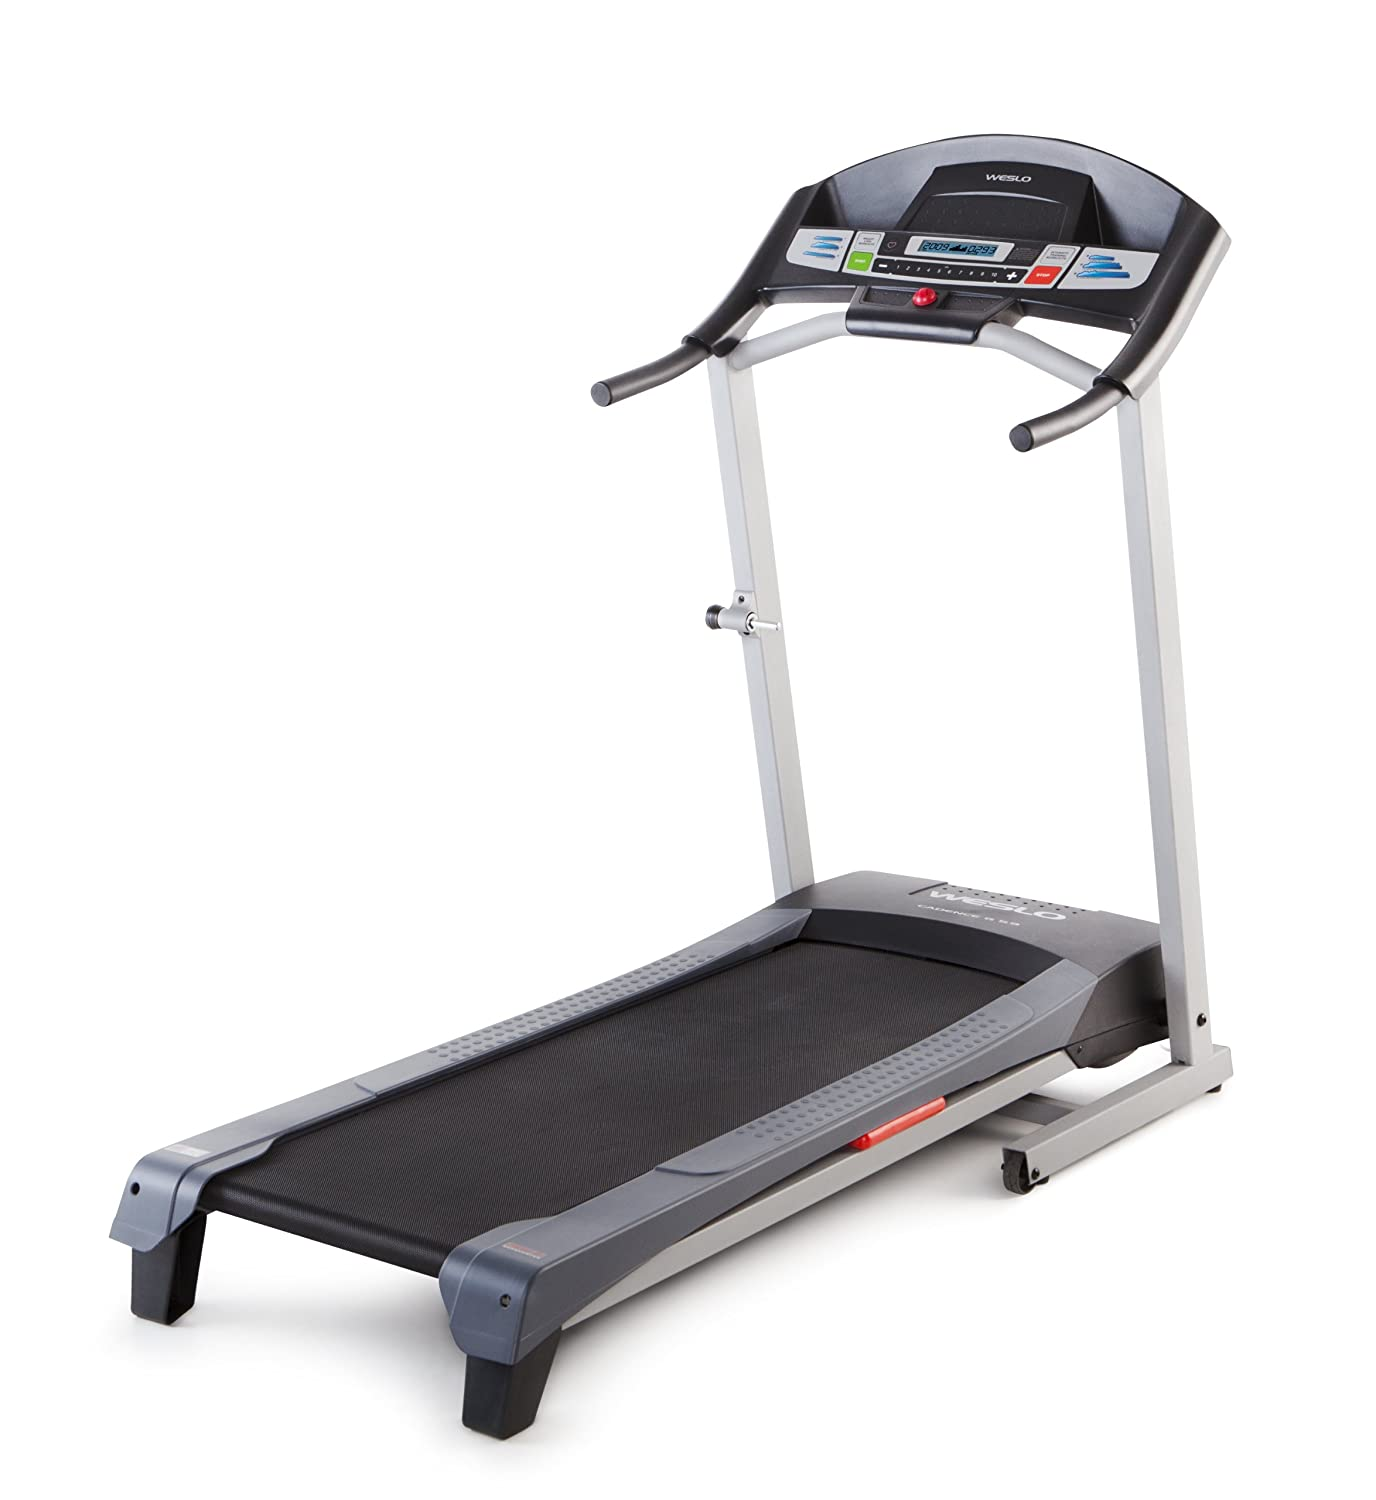 The Best Treadmill Under $500 3